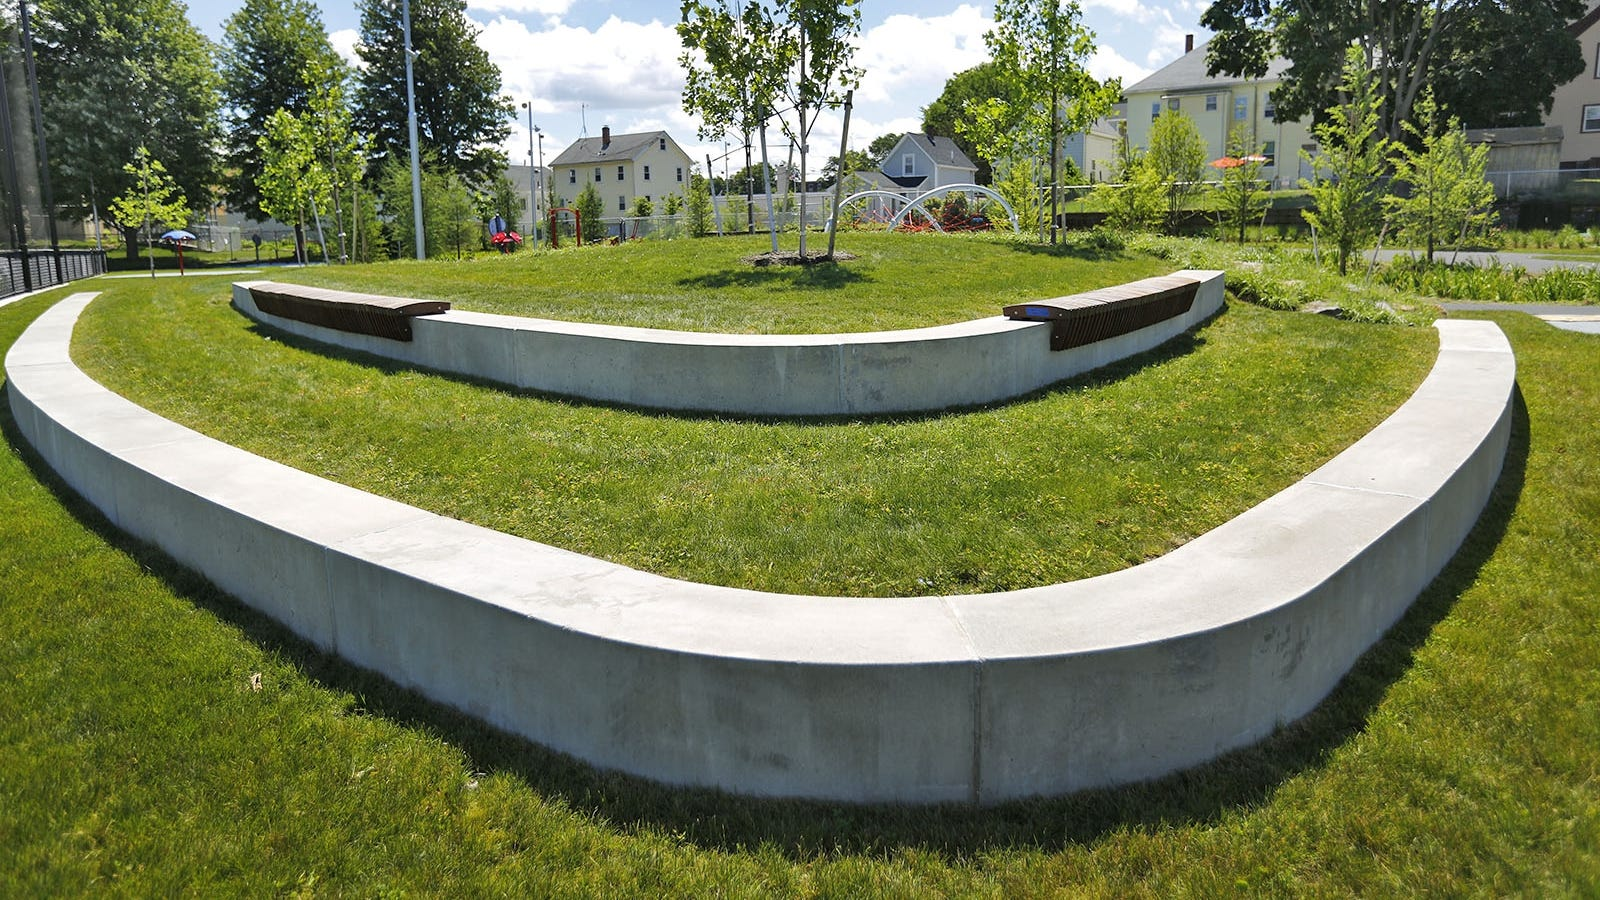 A heavily landscaped sitting area near the playground at Kincaide Park in Quincy.